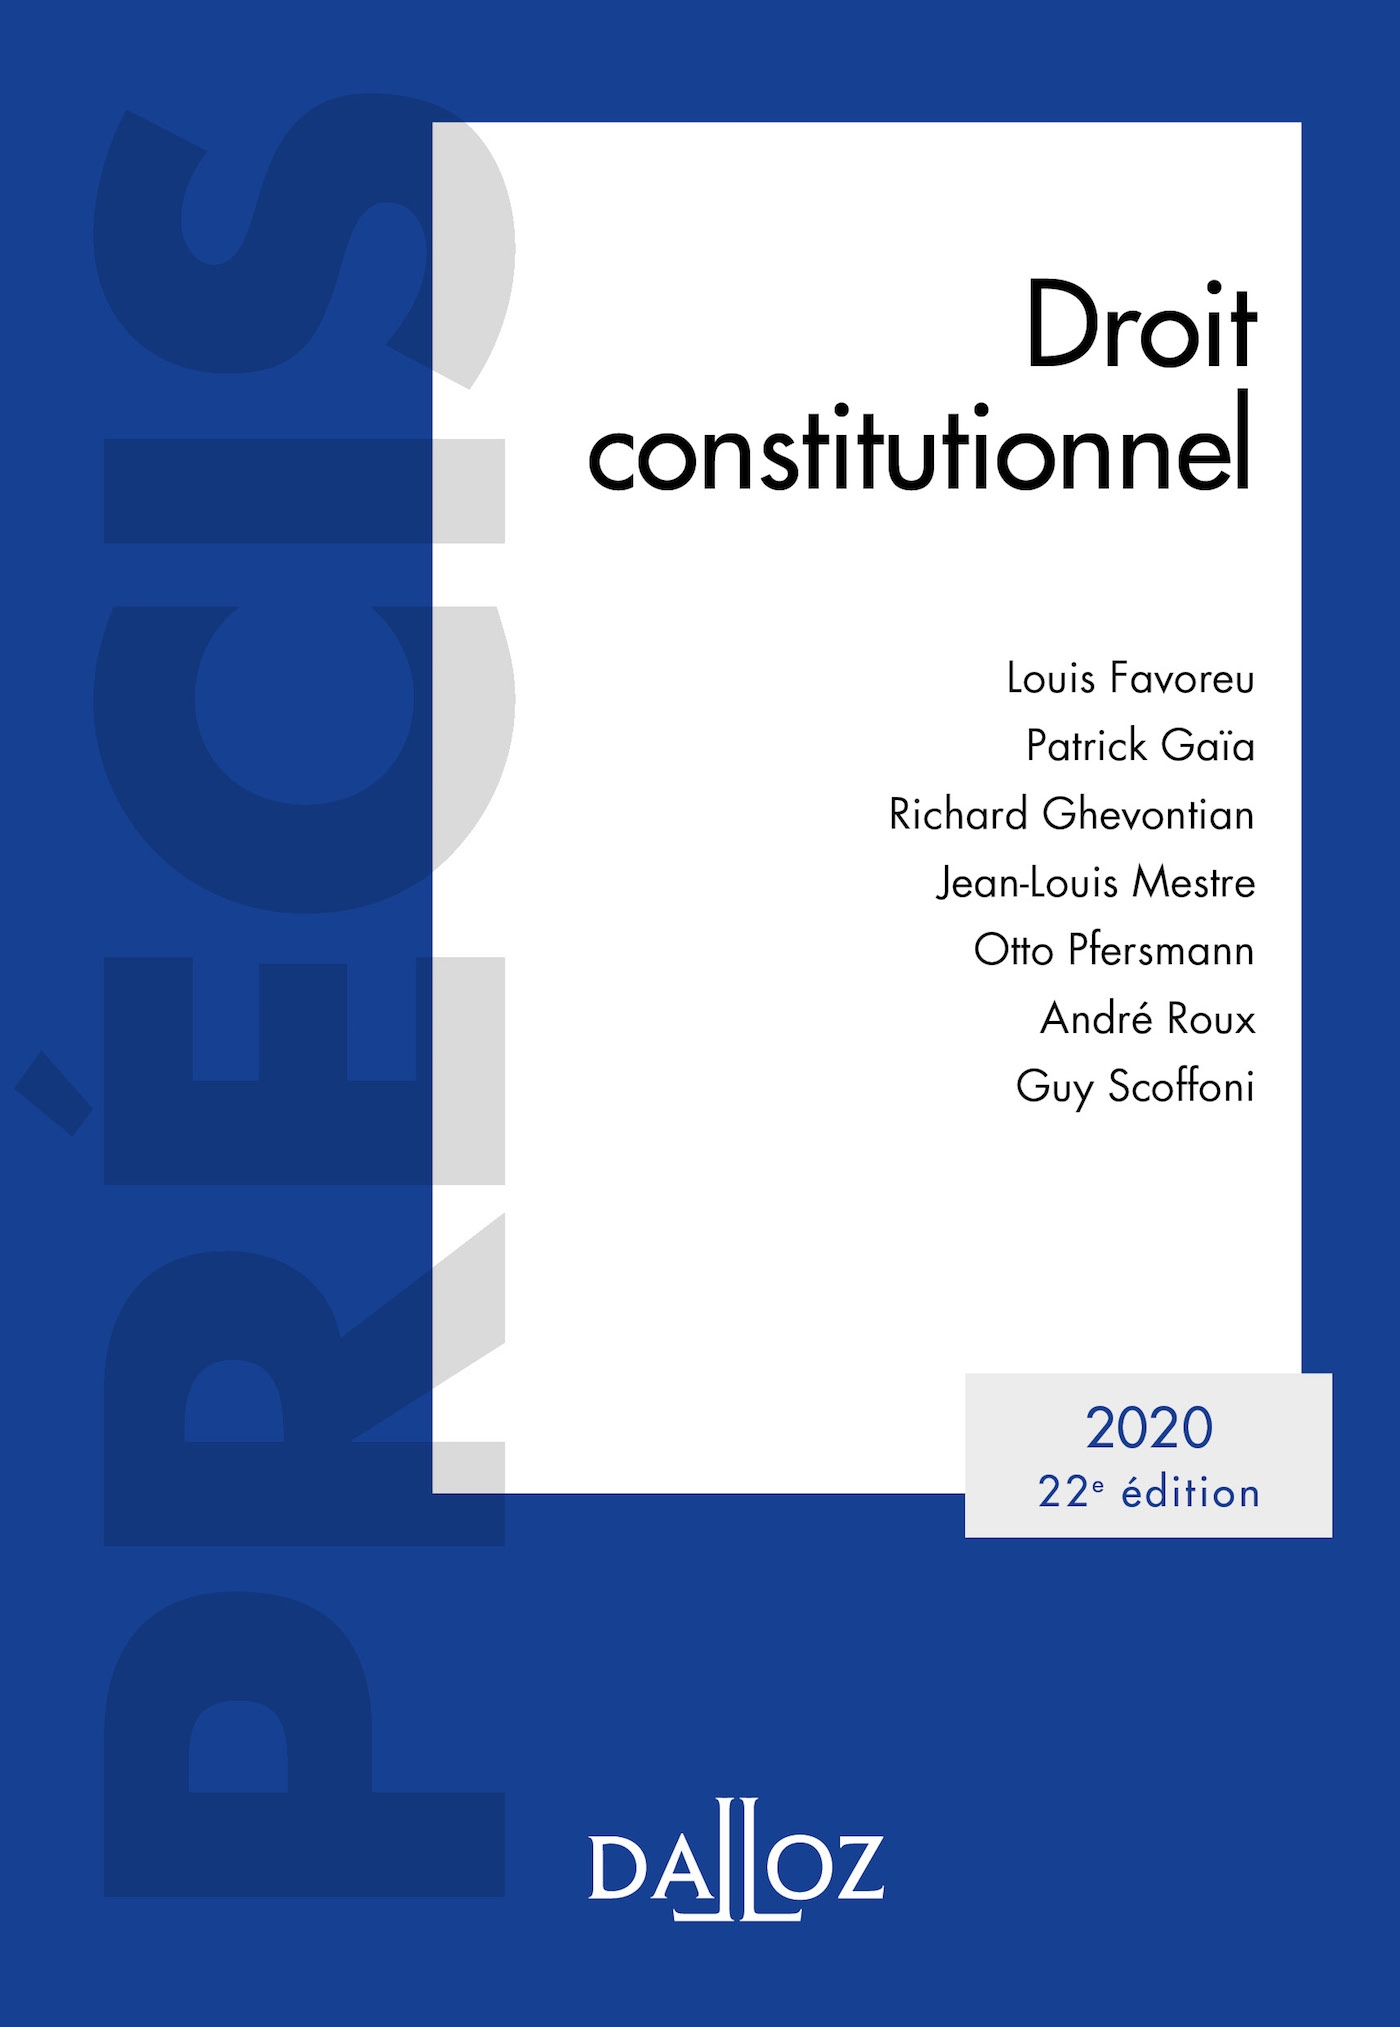 Droit constitutionnel 2020 - 22e éd.